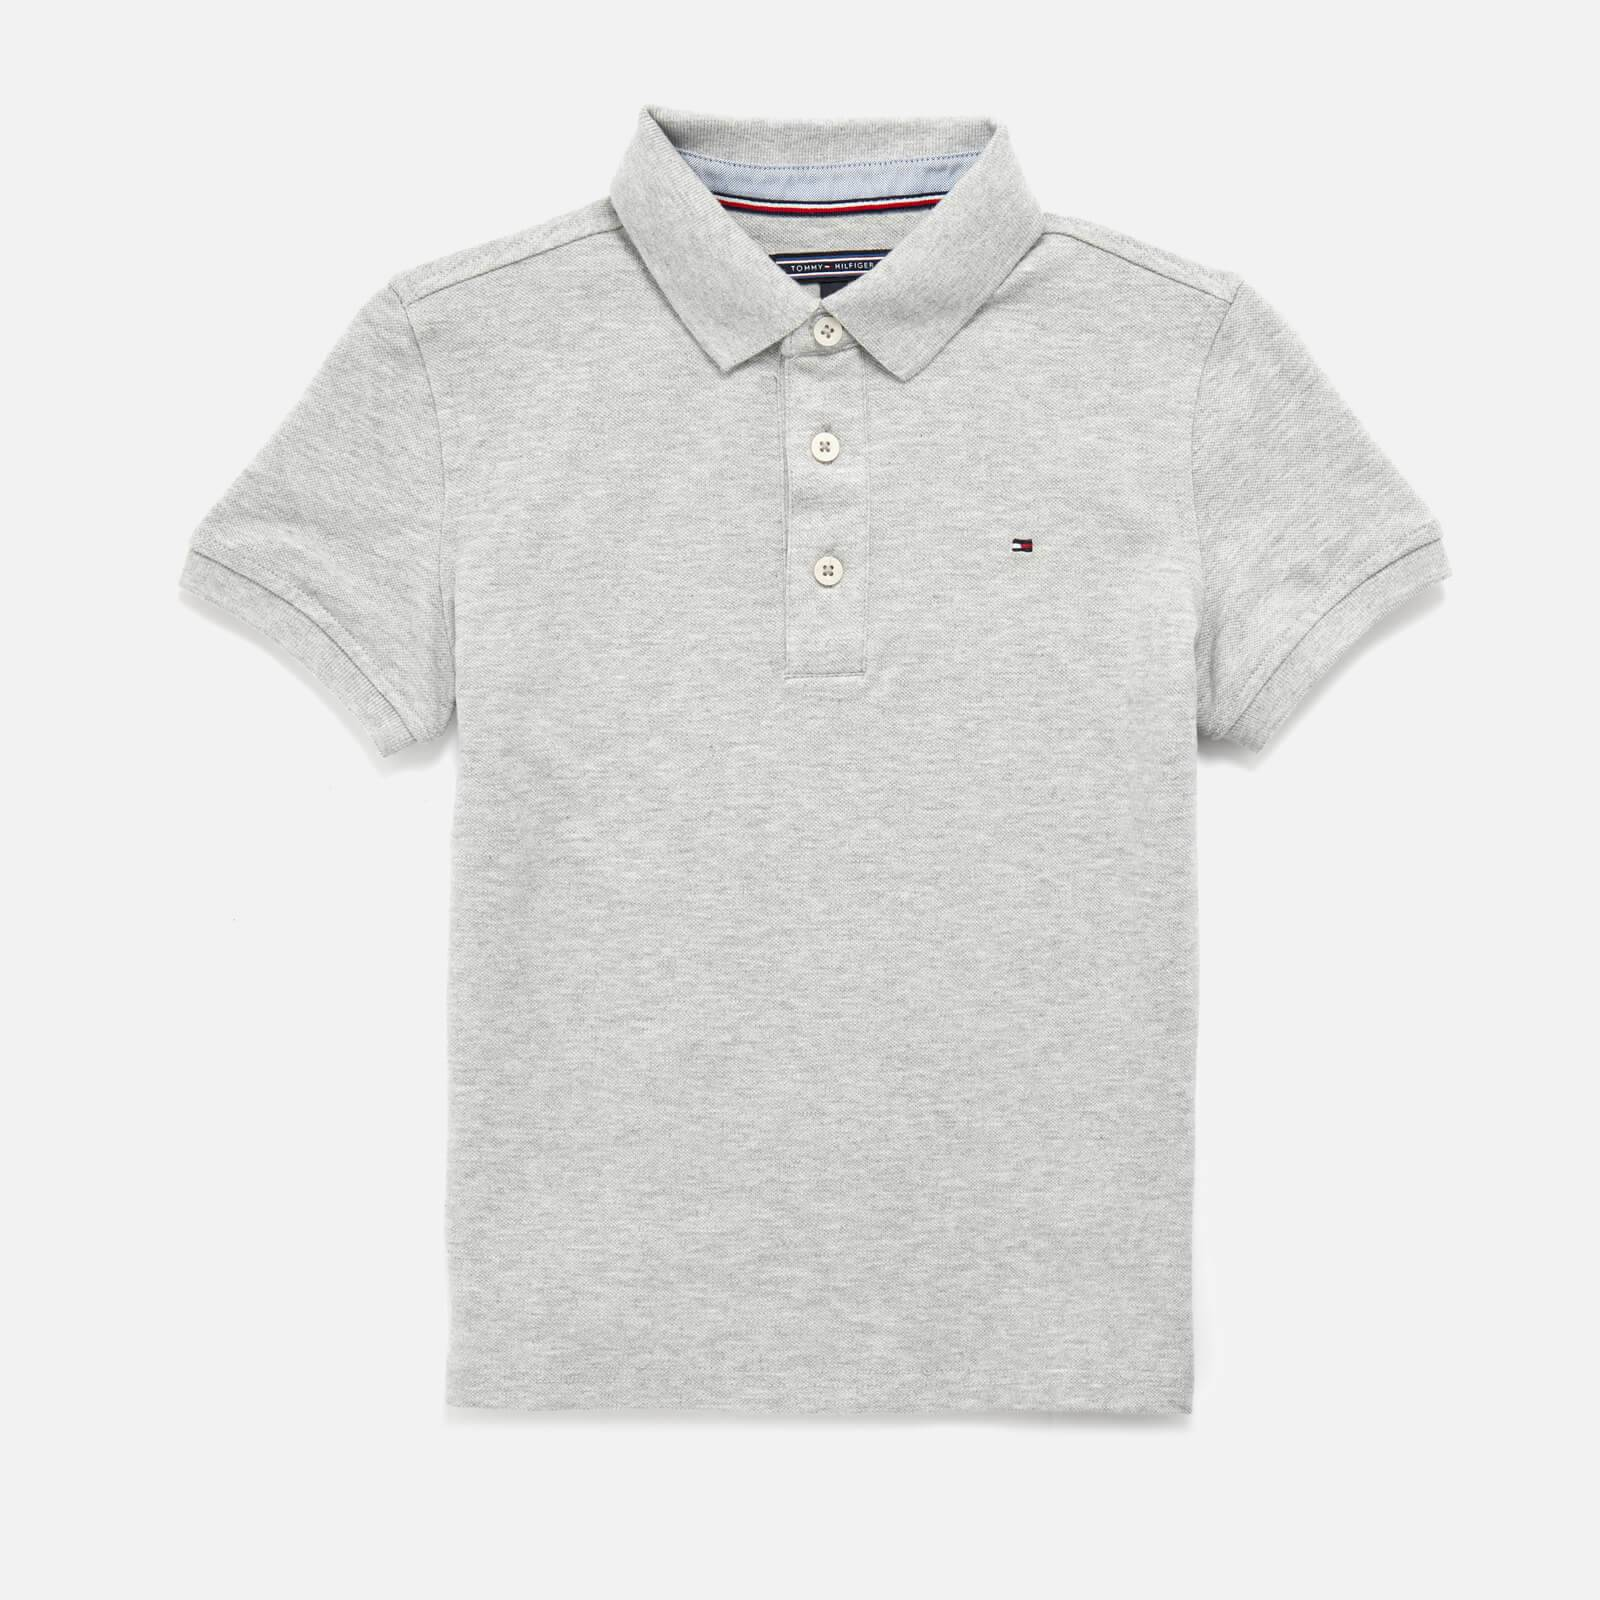 Tommy Kids Boys' Iconic Polo Shirt - Grey Heather - 10 Years